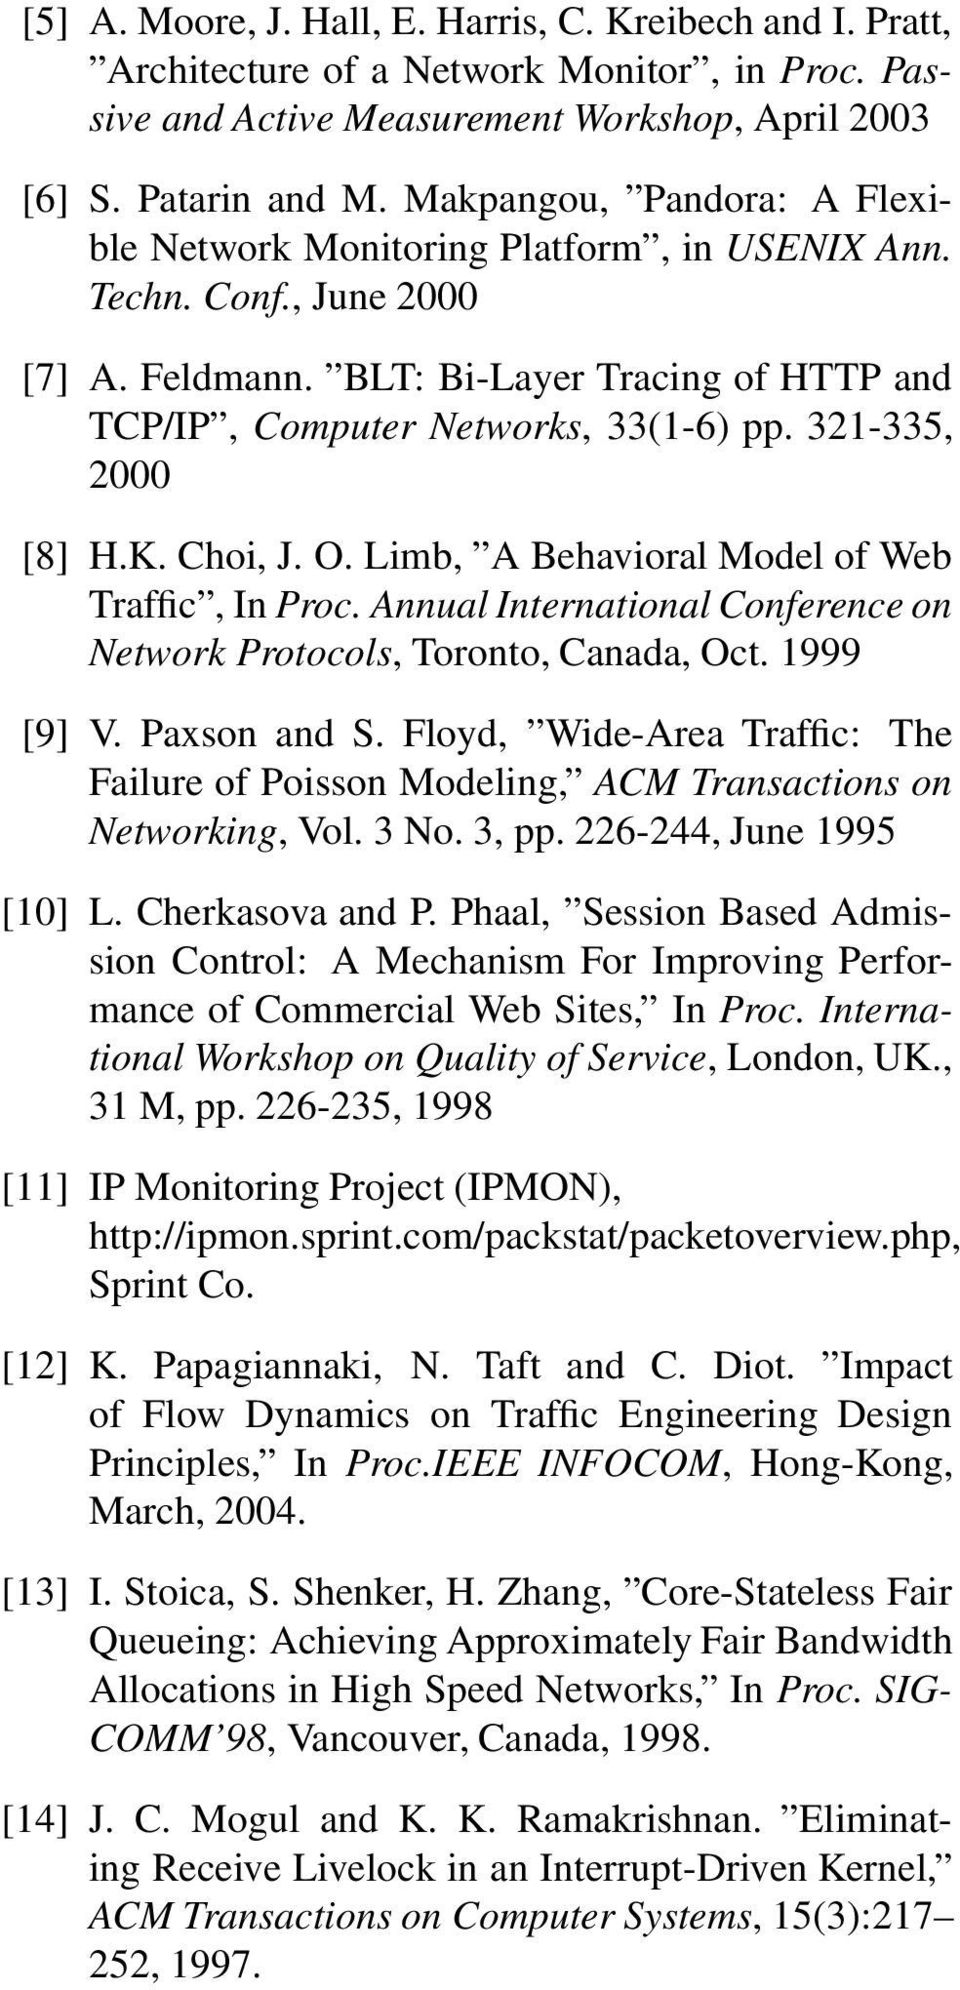 321-335, 2 [8] H.K. Choi, J. O. Limb, A Behavioral Model of Web Traffic, In Proc. Annual International Conference on Network Protocols, Toronto, Canada, Oct. 1999 [9] V. Paxson and S.